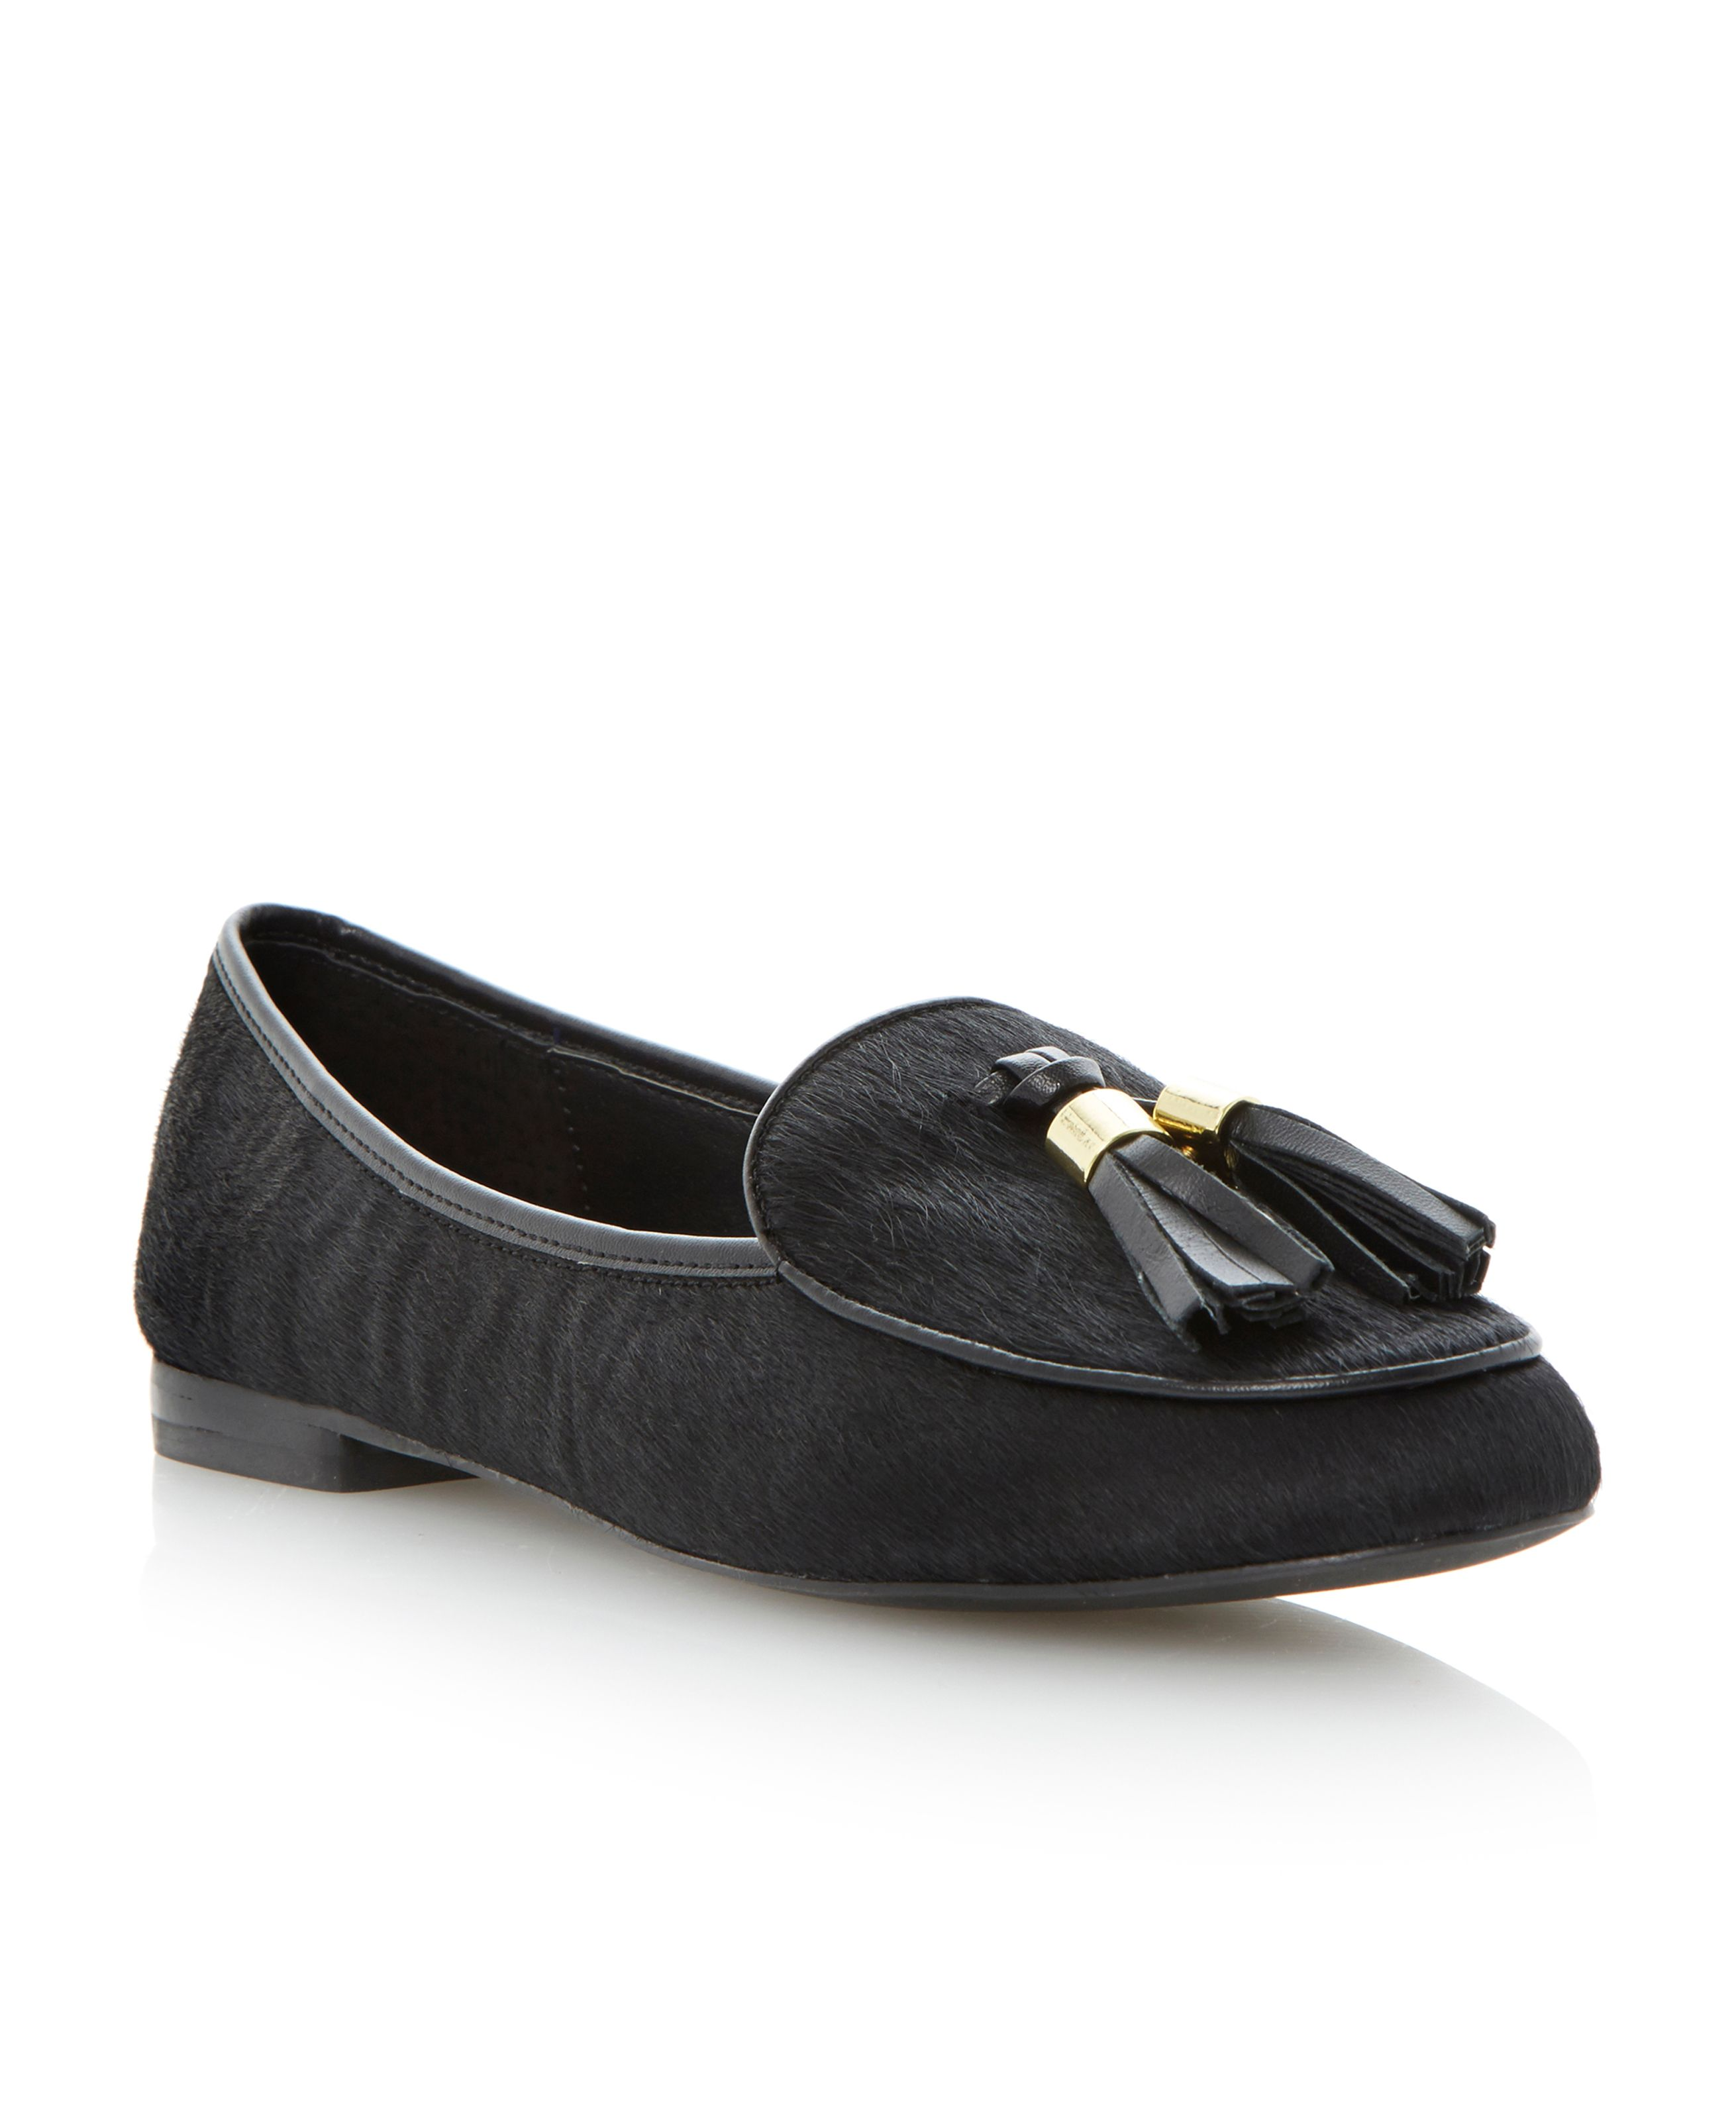 Lunni pony almond toe loafer shoes